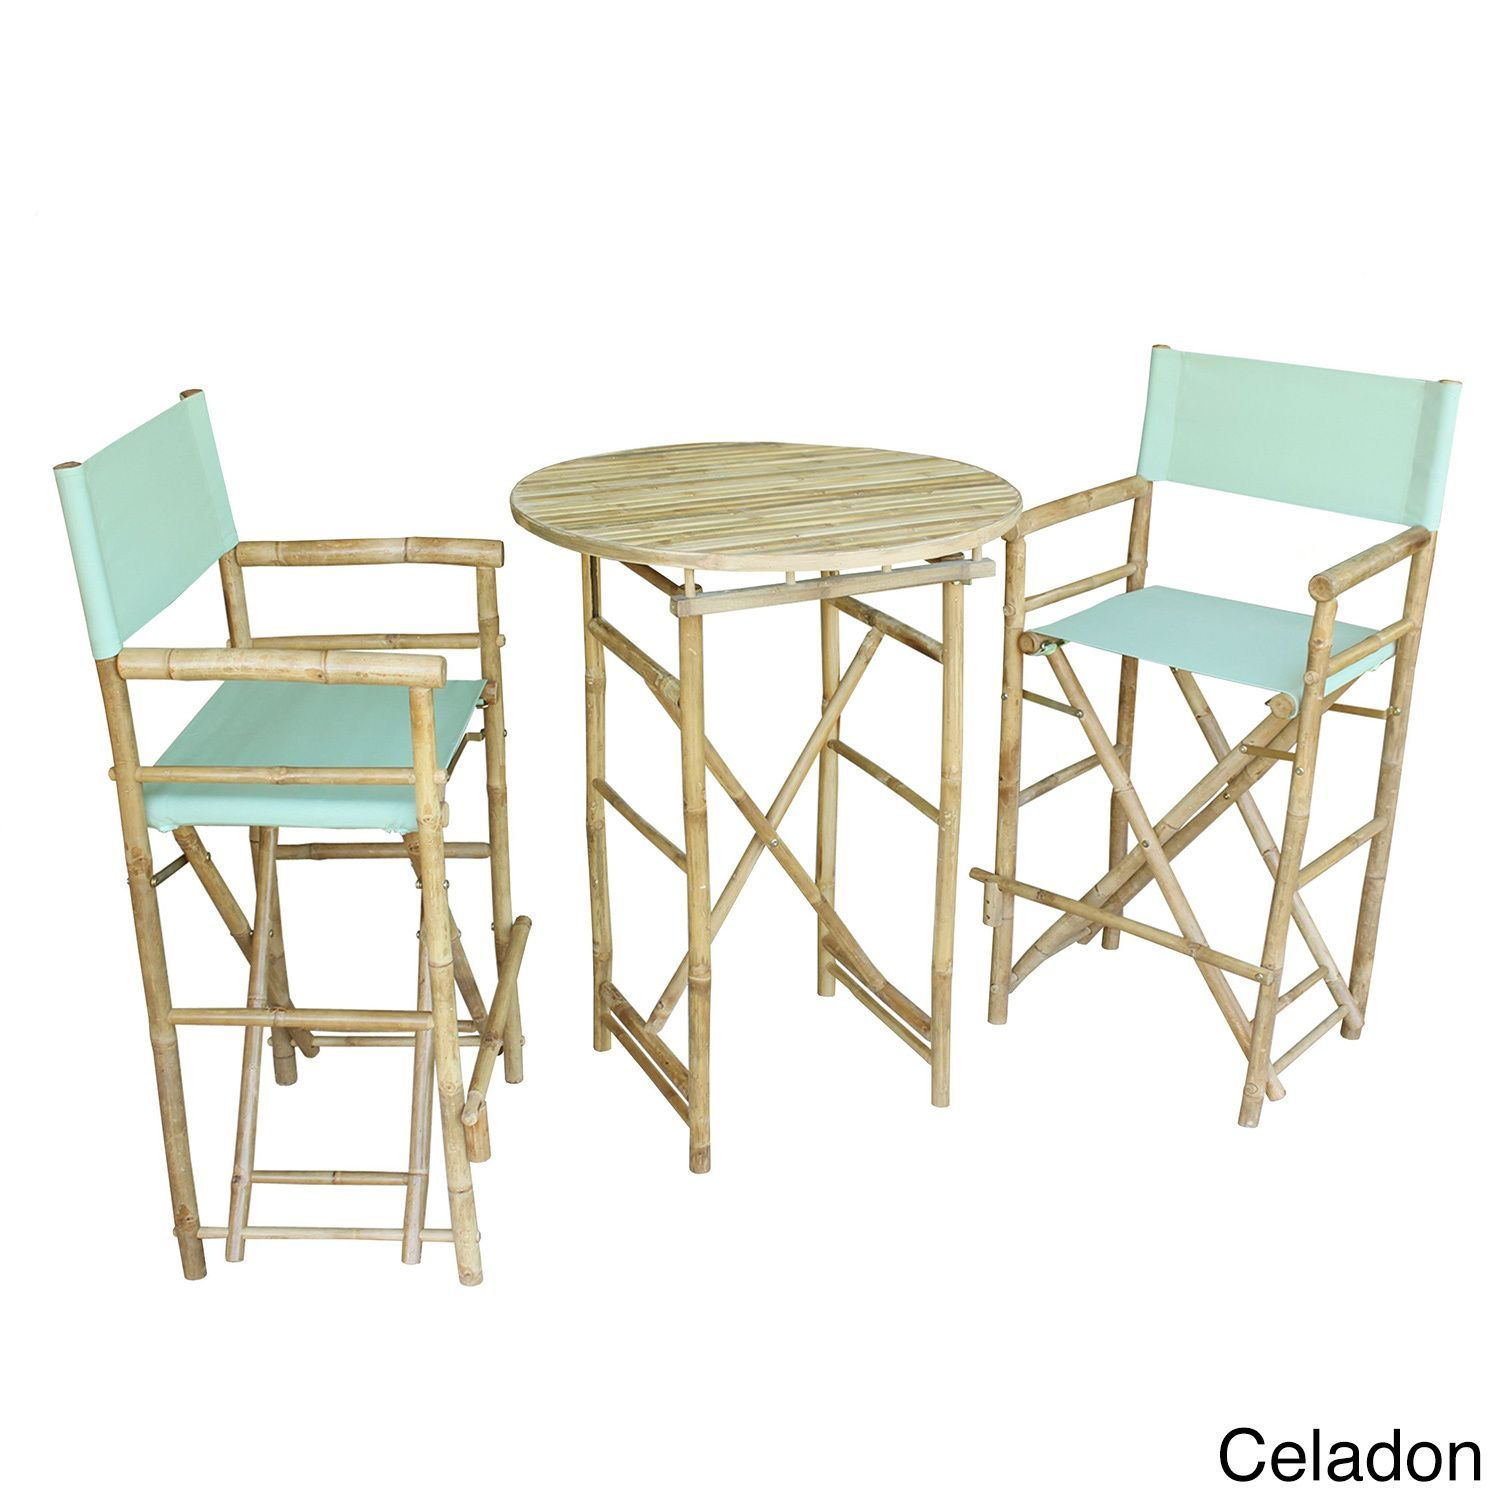 Best Of Outside Bar Height Table and Chairs